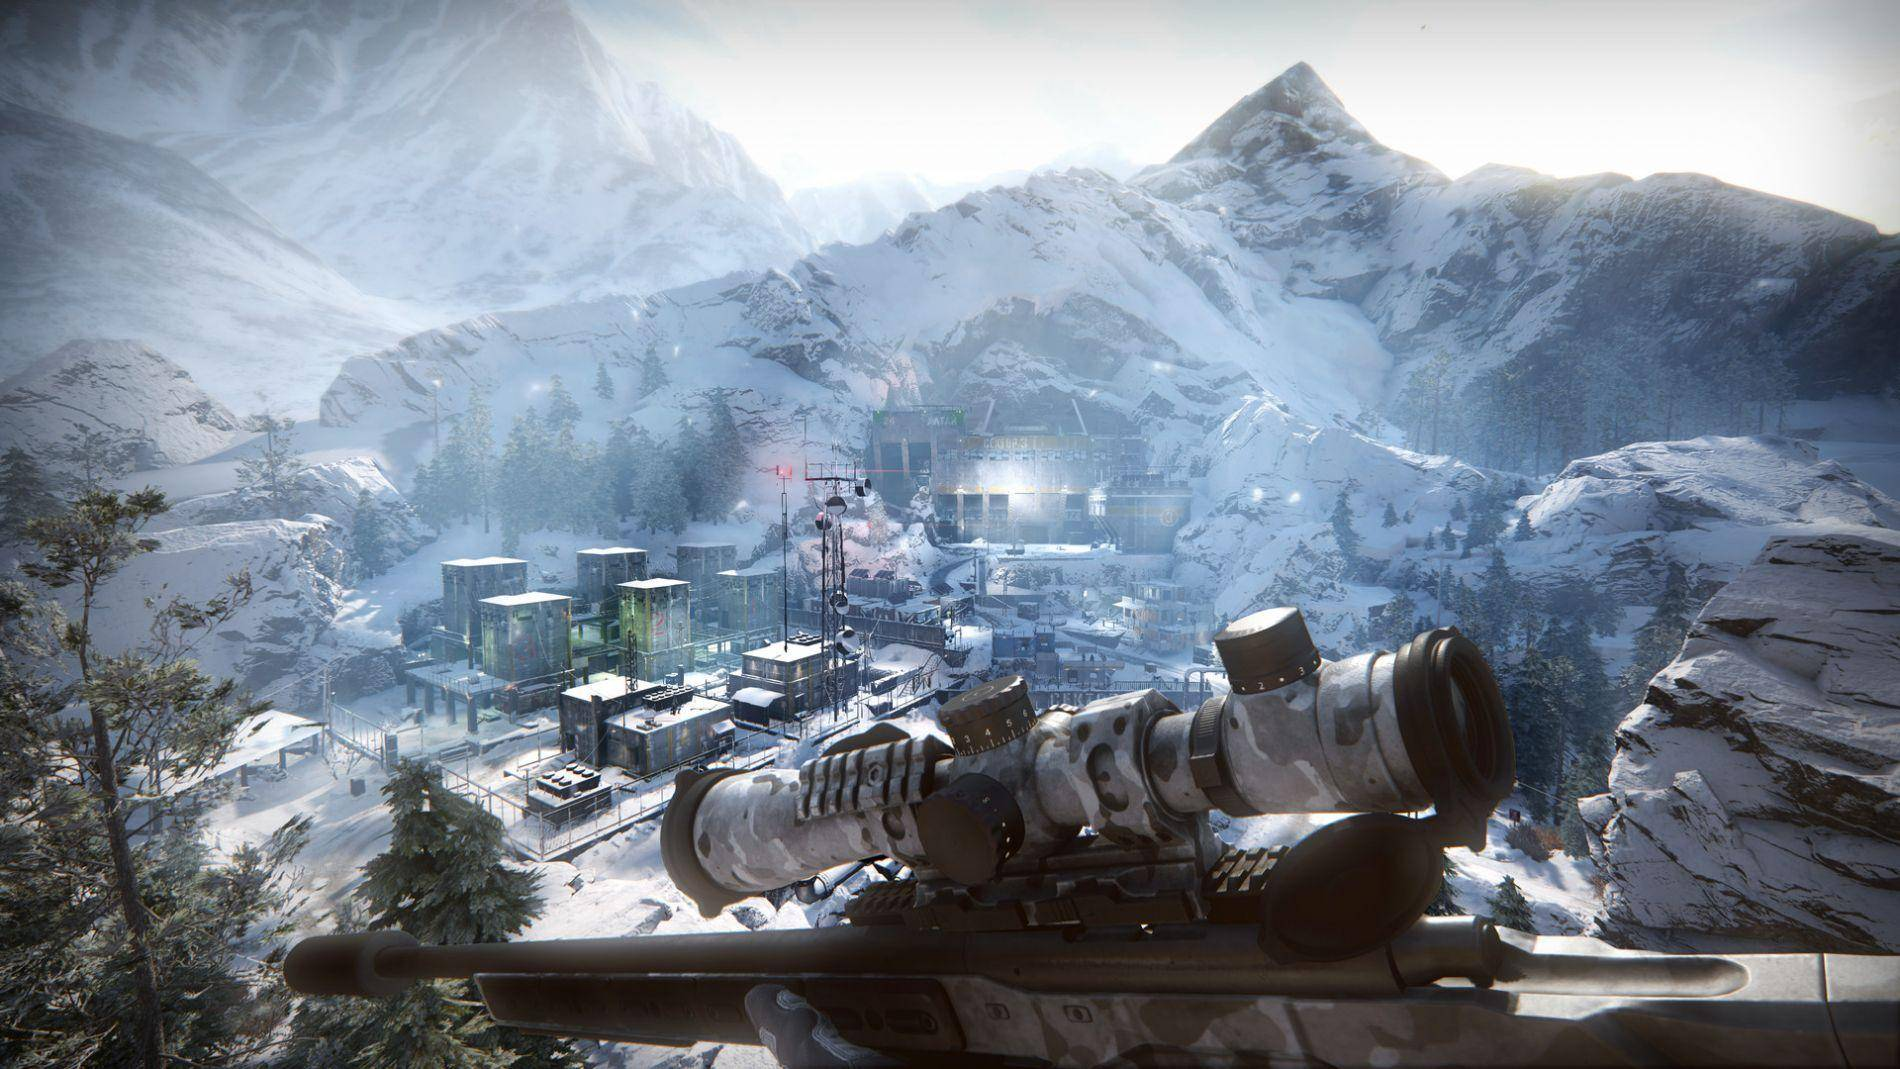 E32019: ¡Probamos Sniper Ghost Warrior Contracts! 1